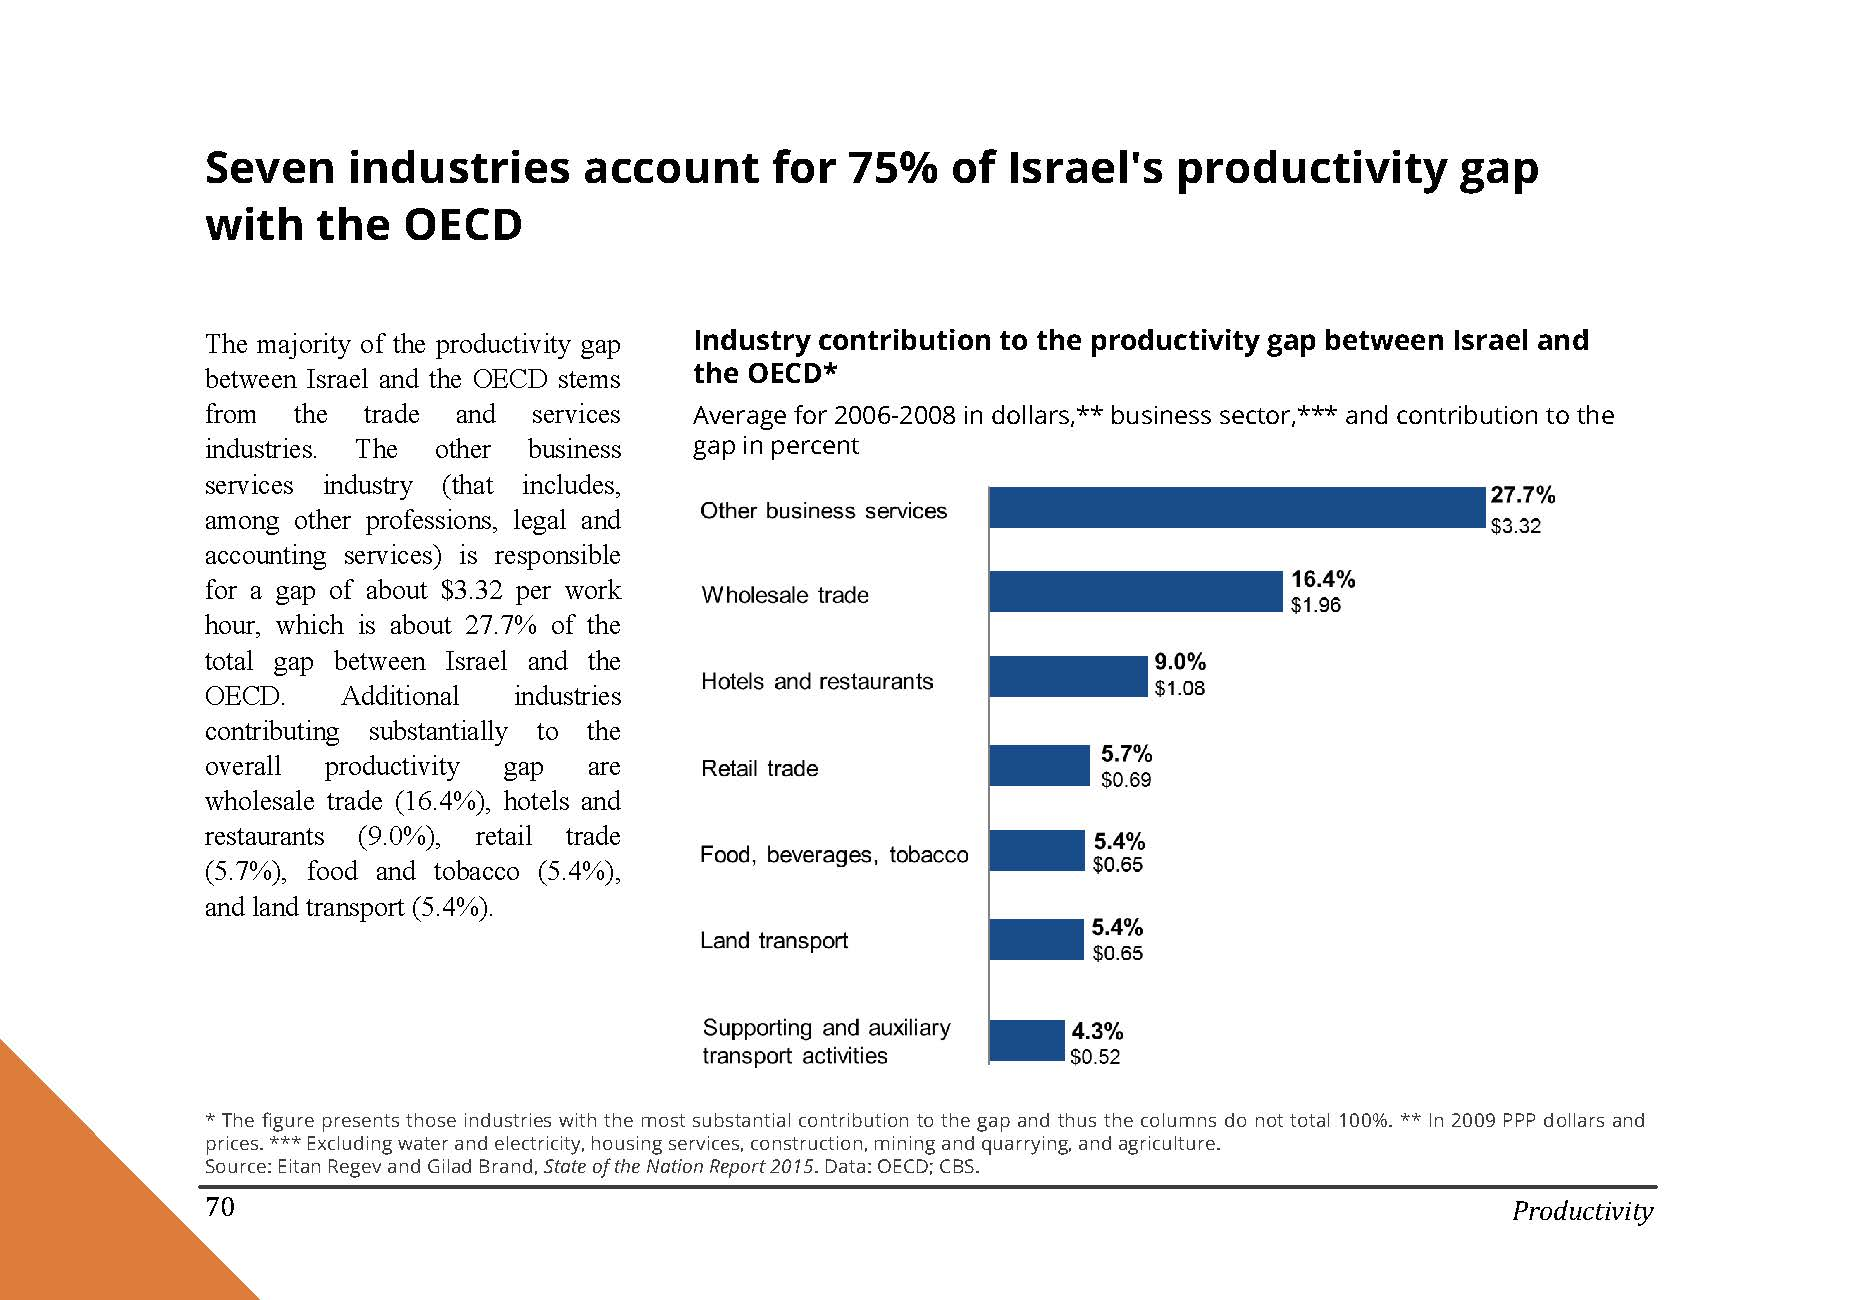 Seven industries account for 75% of Israel's productivity gap with the OECD